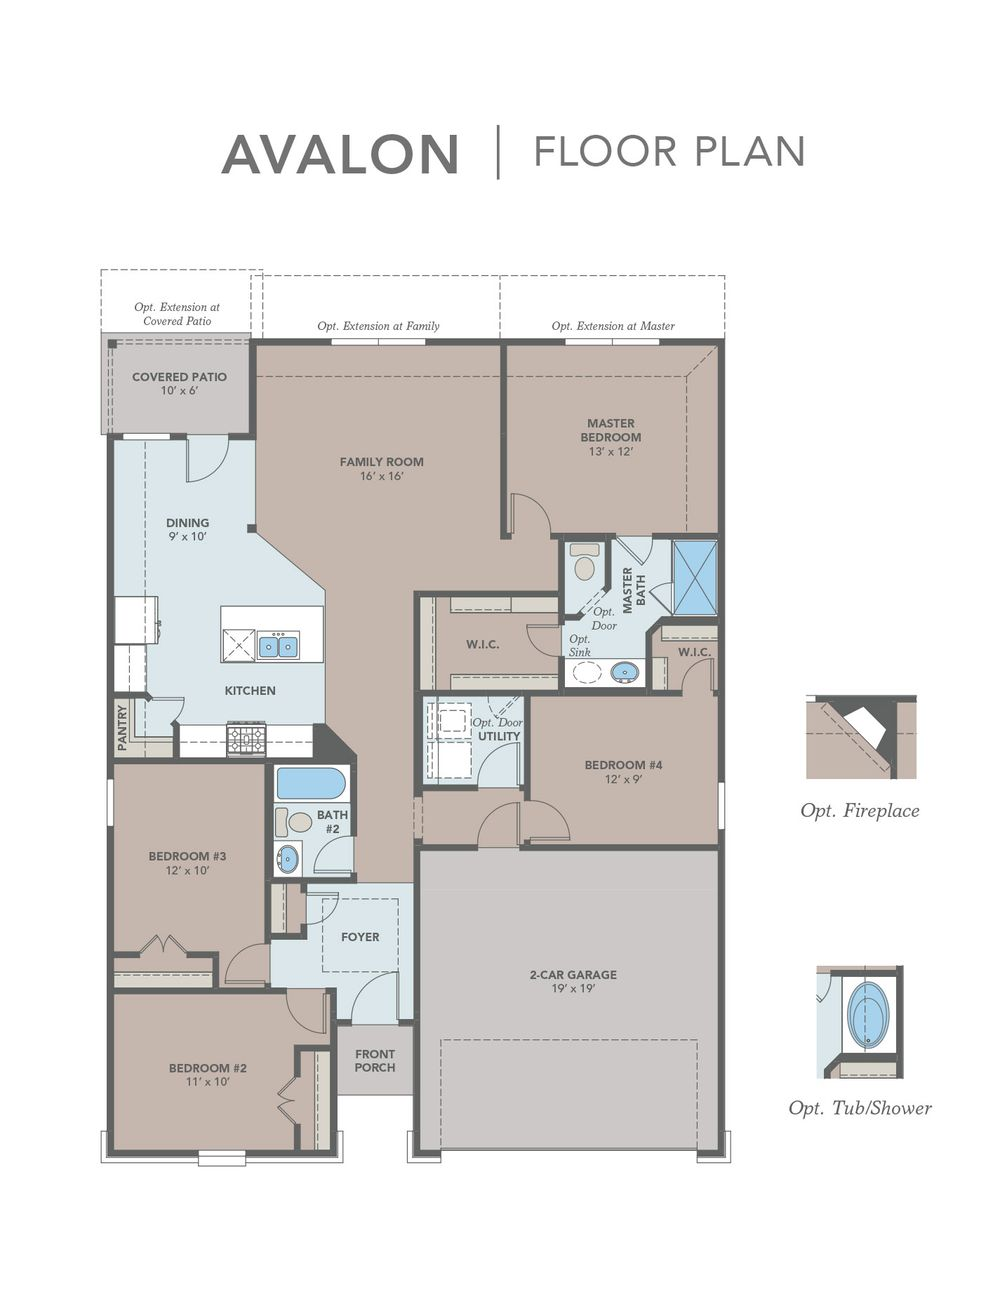 Avalon home plan by gehan homes in clements ranch for Floor plan search